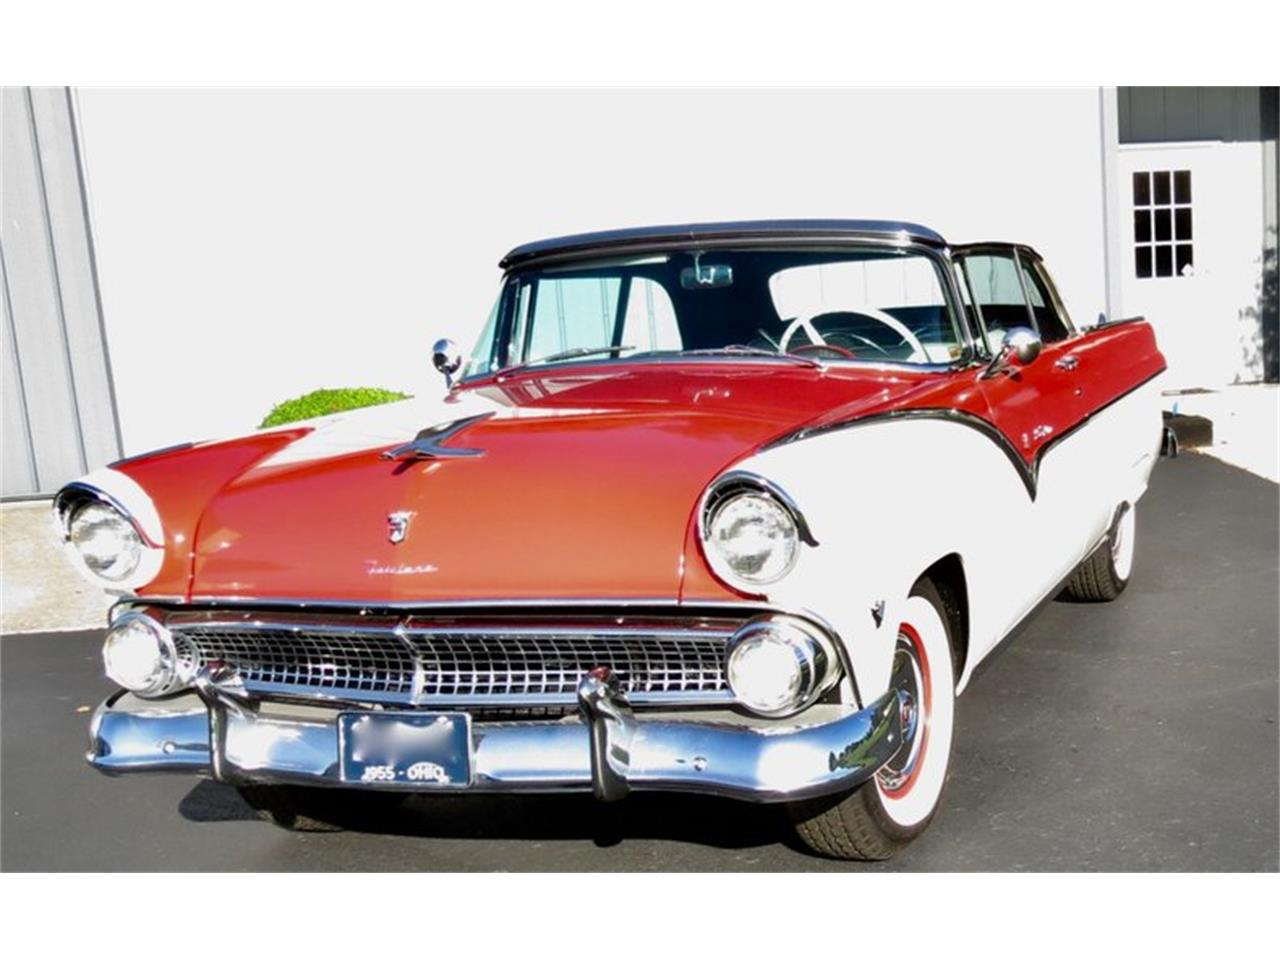 Large Picture of Classic '55 Ford Fairlane located in Ohio - $38,500.00 Offered by Classic Car Connection - QU8Q